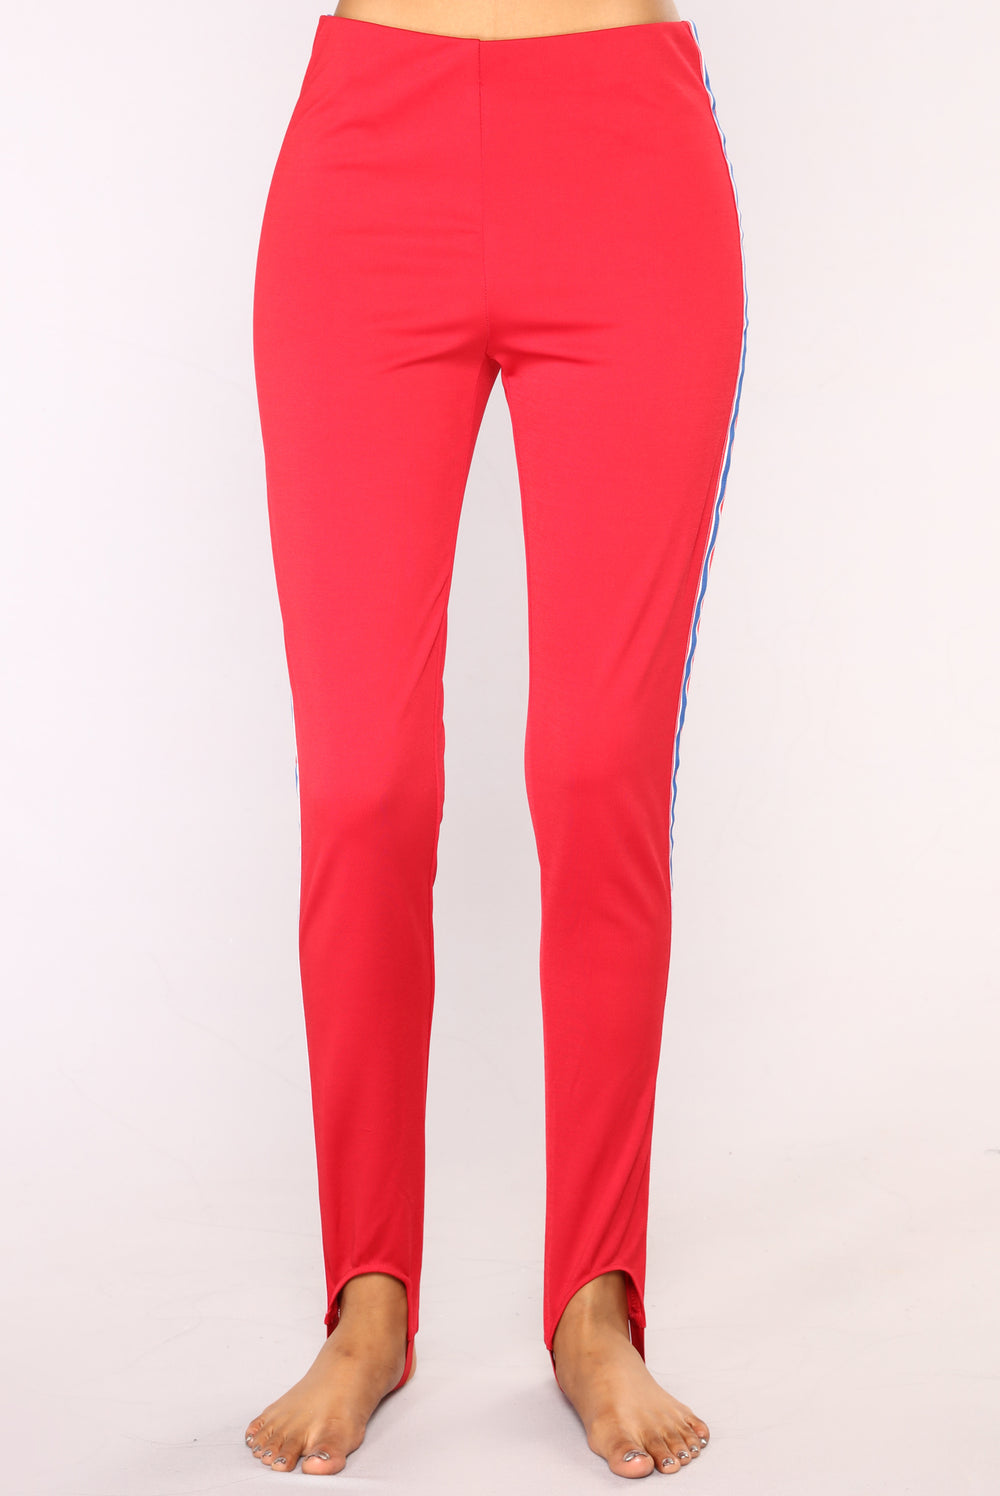 Date With Bella Leggings - Red/Navy